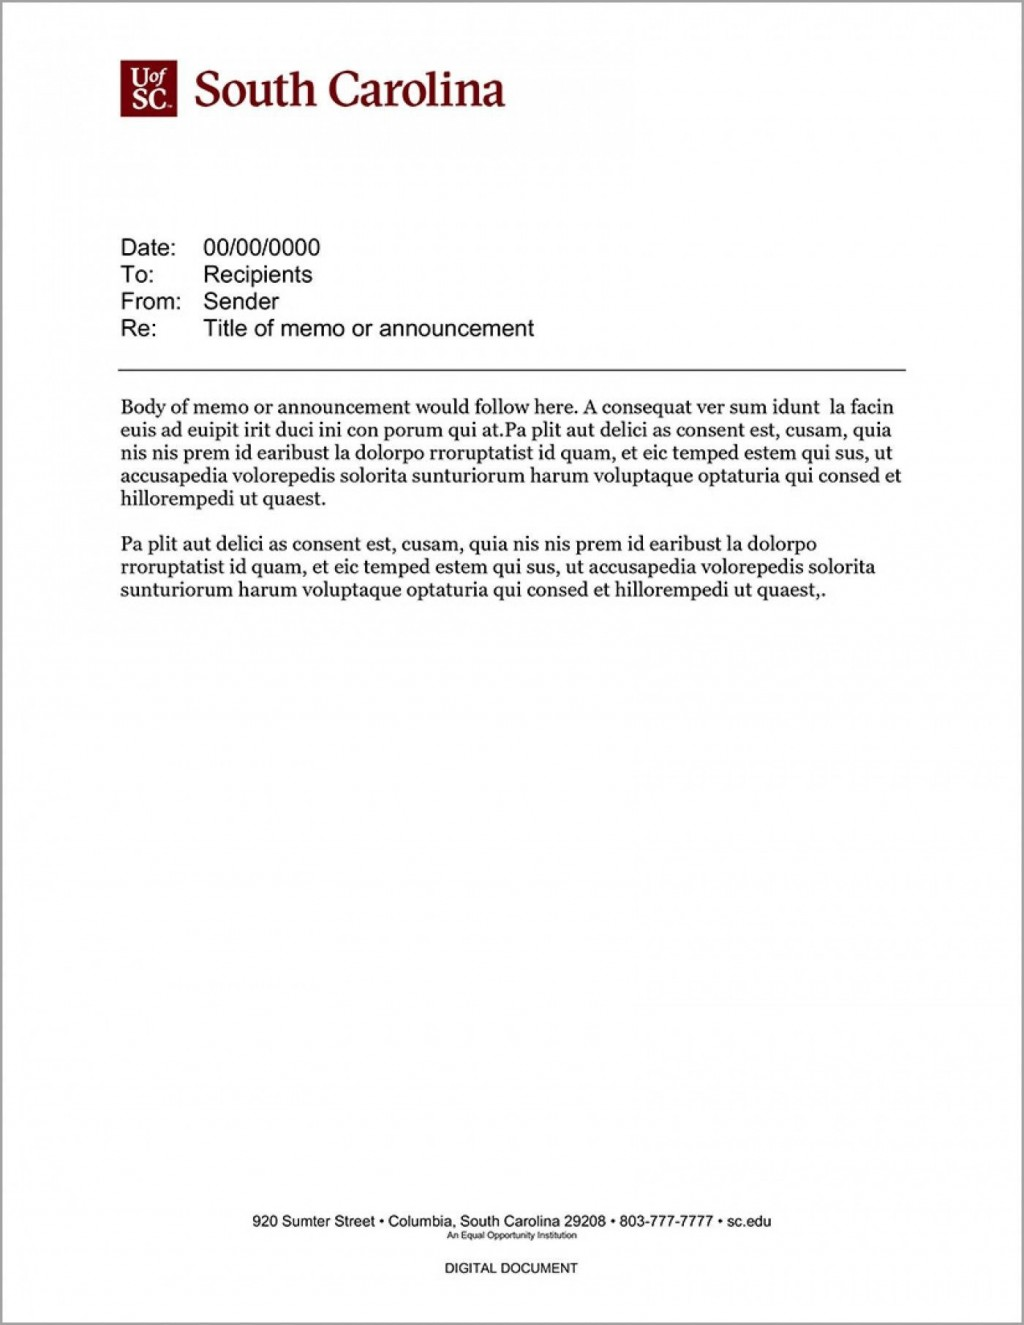 004 Fascinating Memo Template For Word High Definition  Free Cash Sample 2013Large